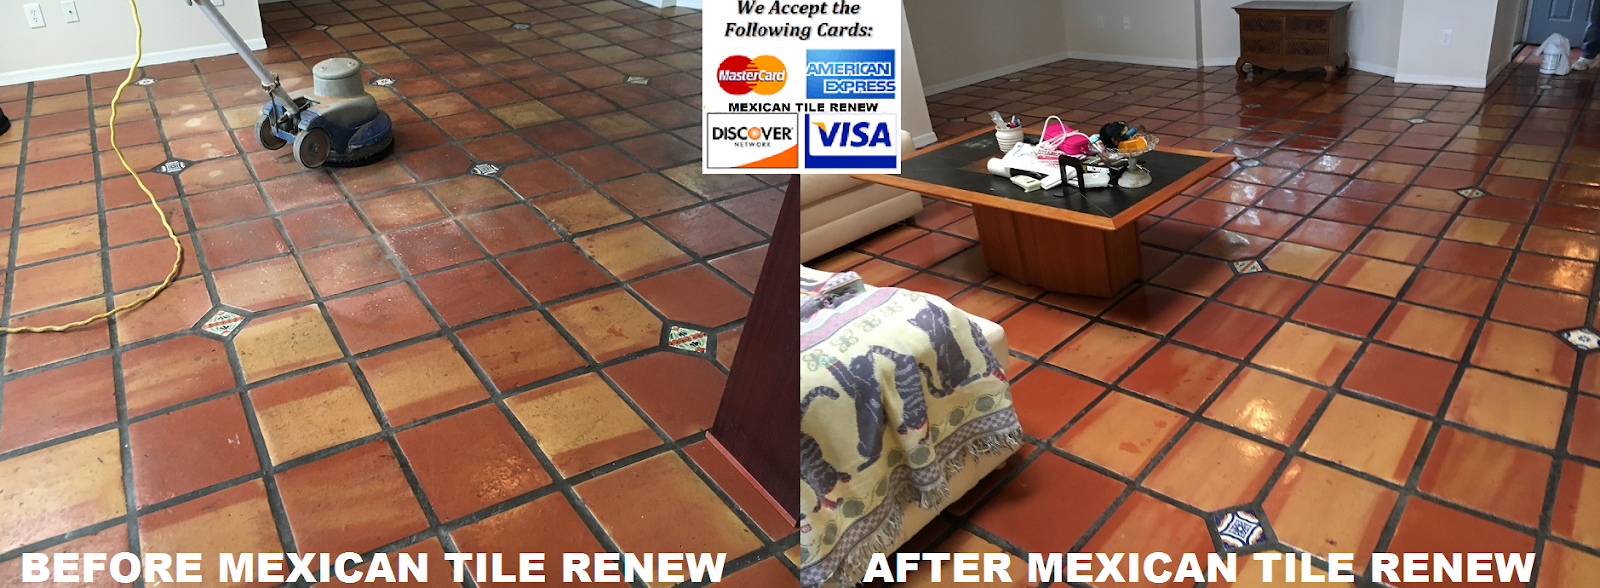 Mexican Tile Renew Project In St Pete Fl Where Rubber Pad Under Area Rug Had Stuck To The